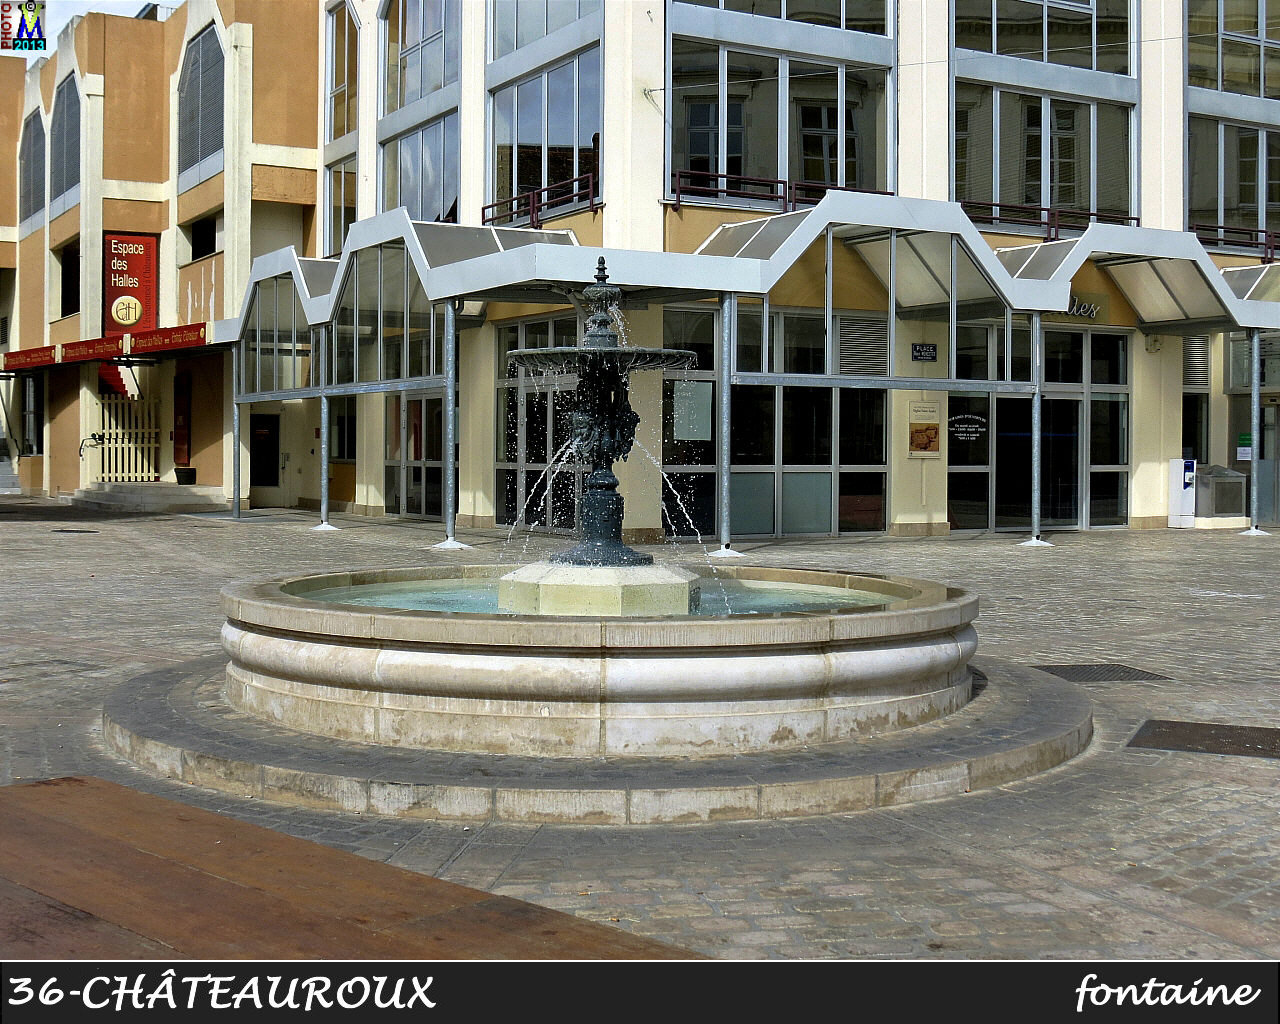 36CHATEAUROUX_fontaine_100.jpg